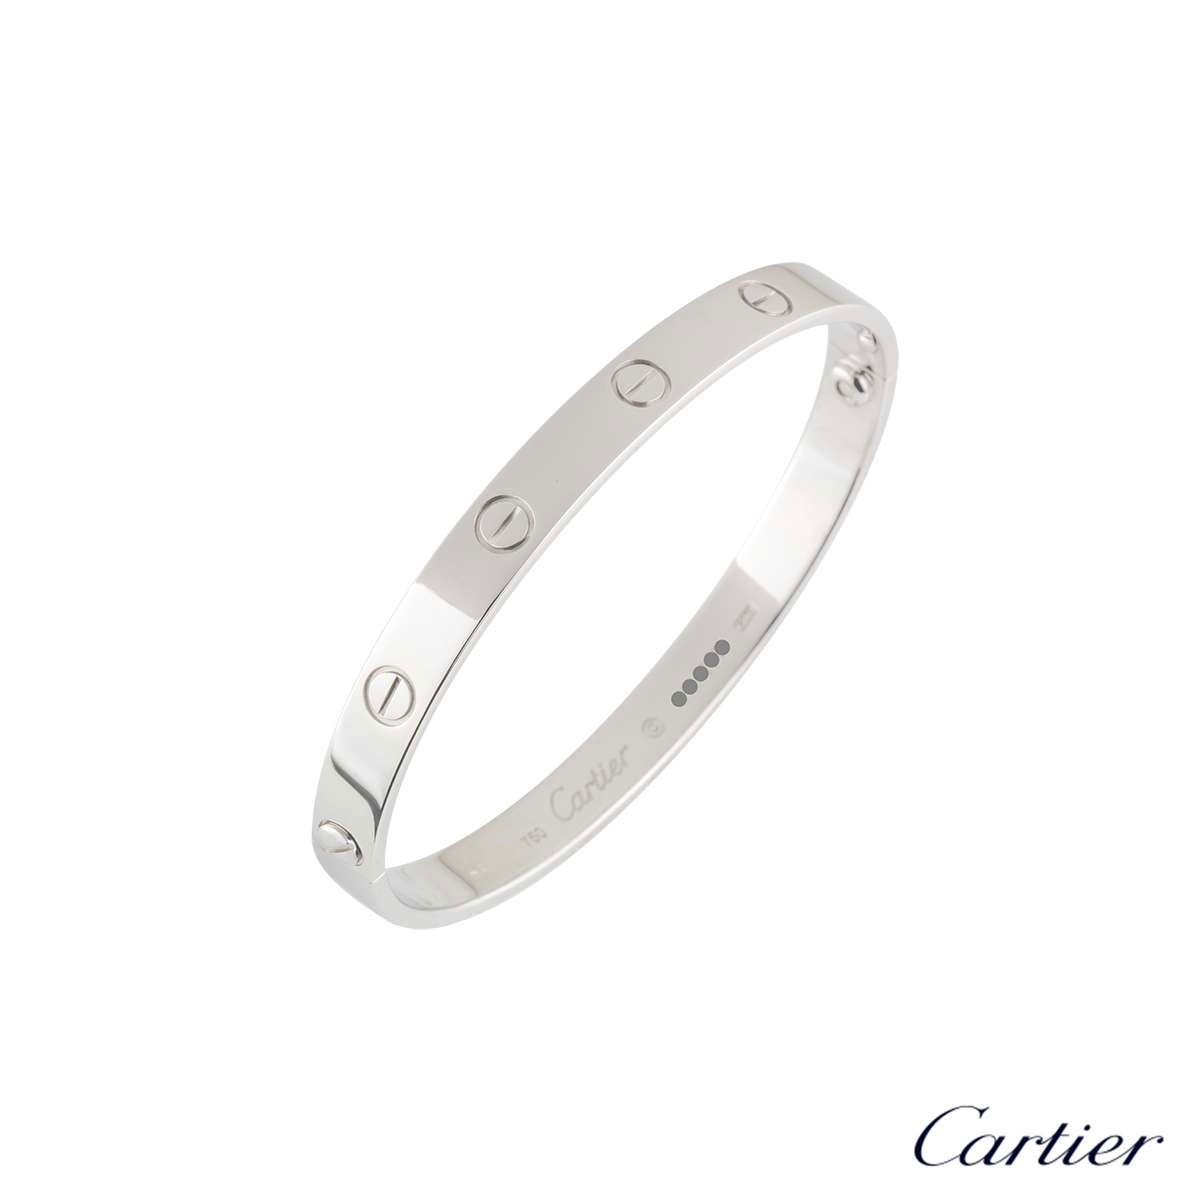 Cartier 18k White Gold Love Bracelet Size 21 B6035421